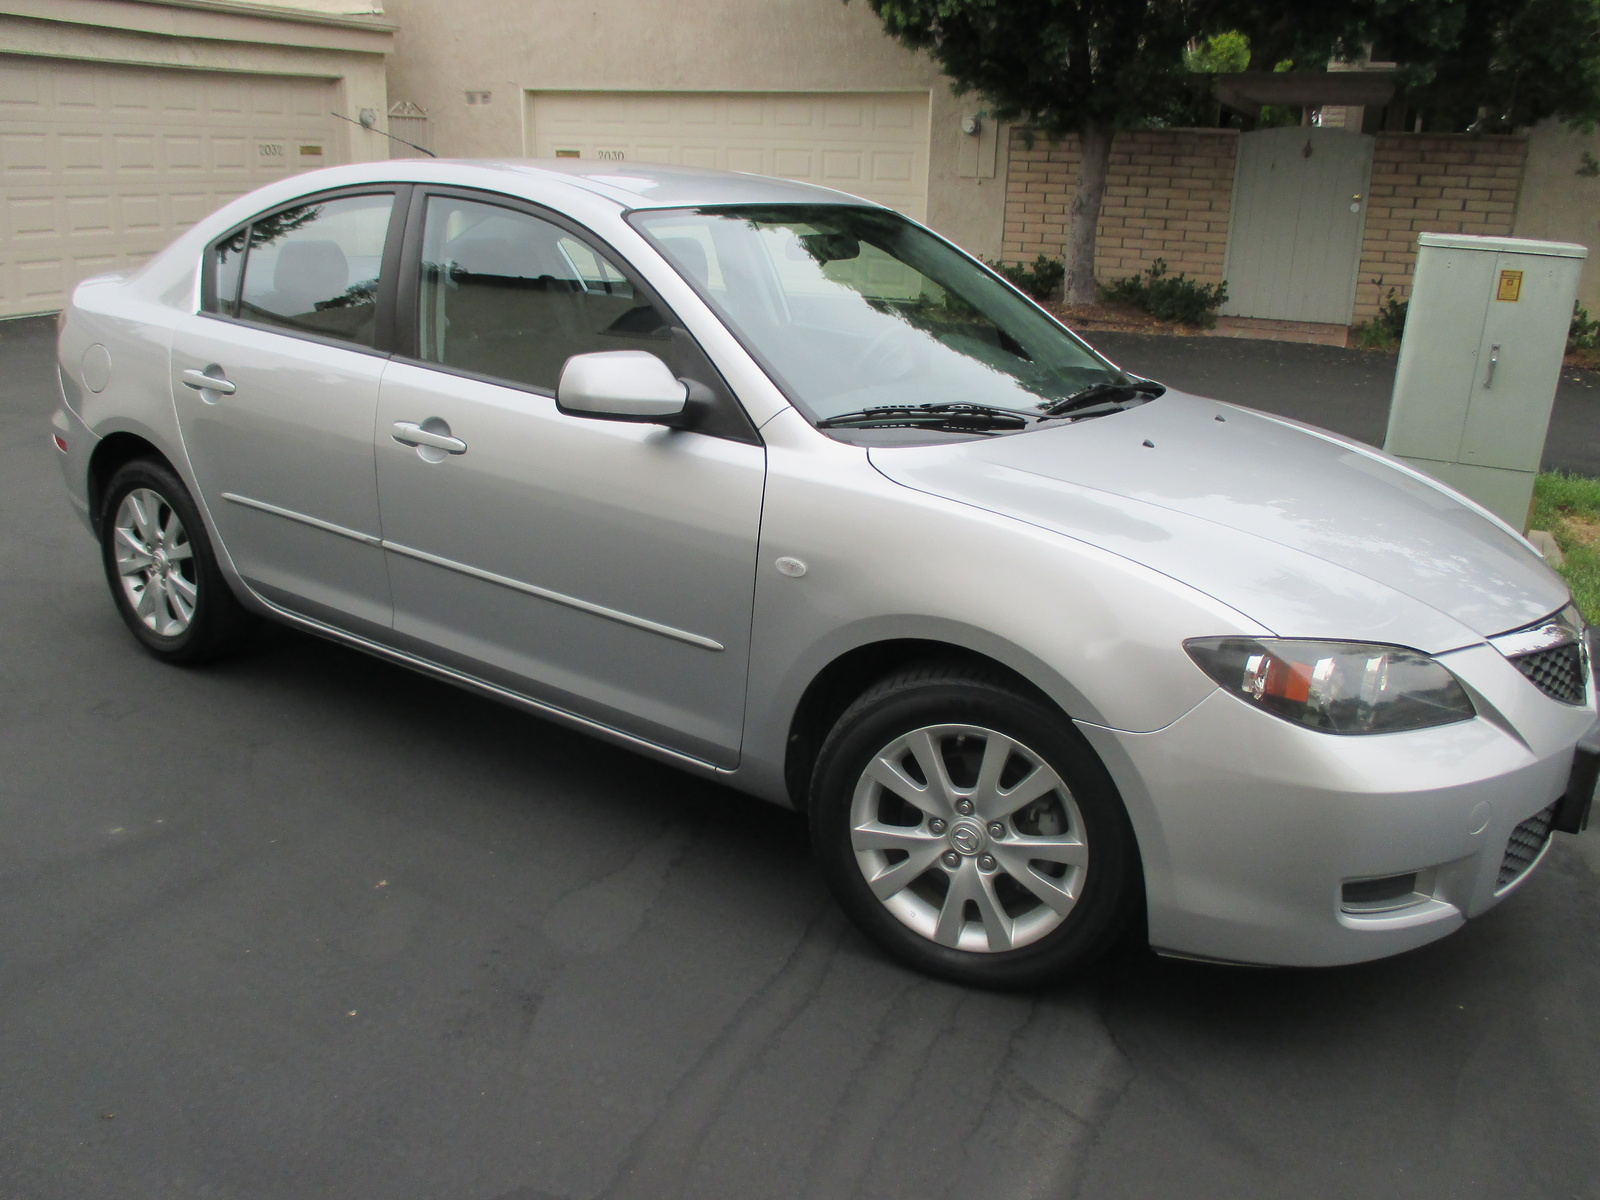 used mazda mazda3 for sale riverside ca cargurus. Black Bedroom Furniture Sets. Home Design Ideas